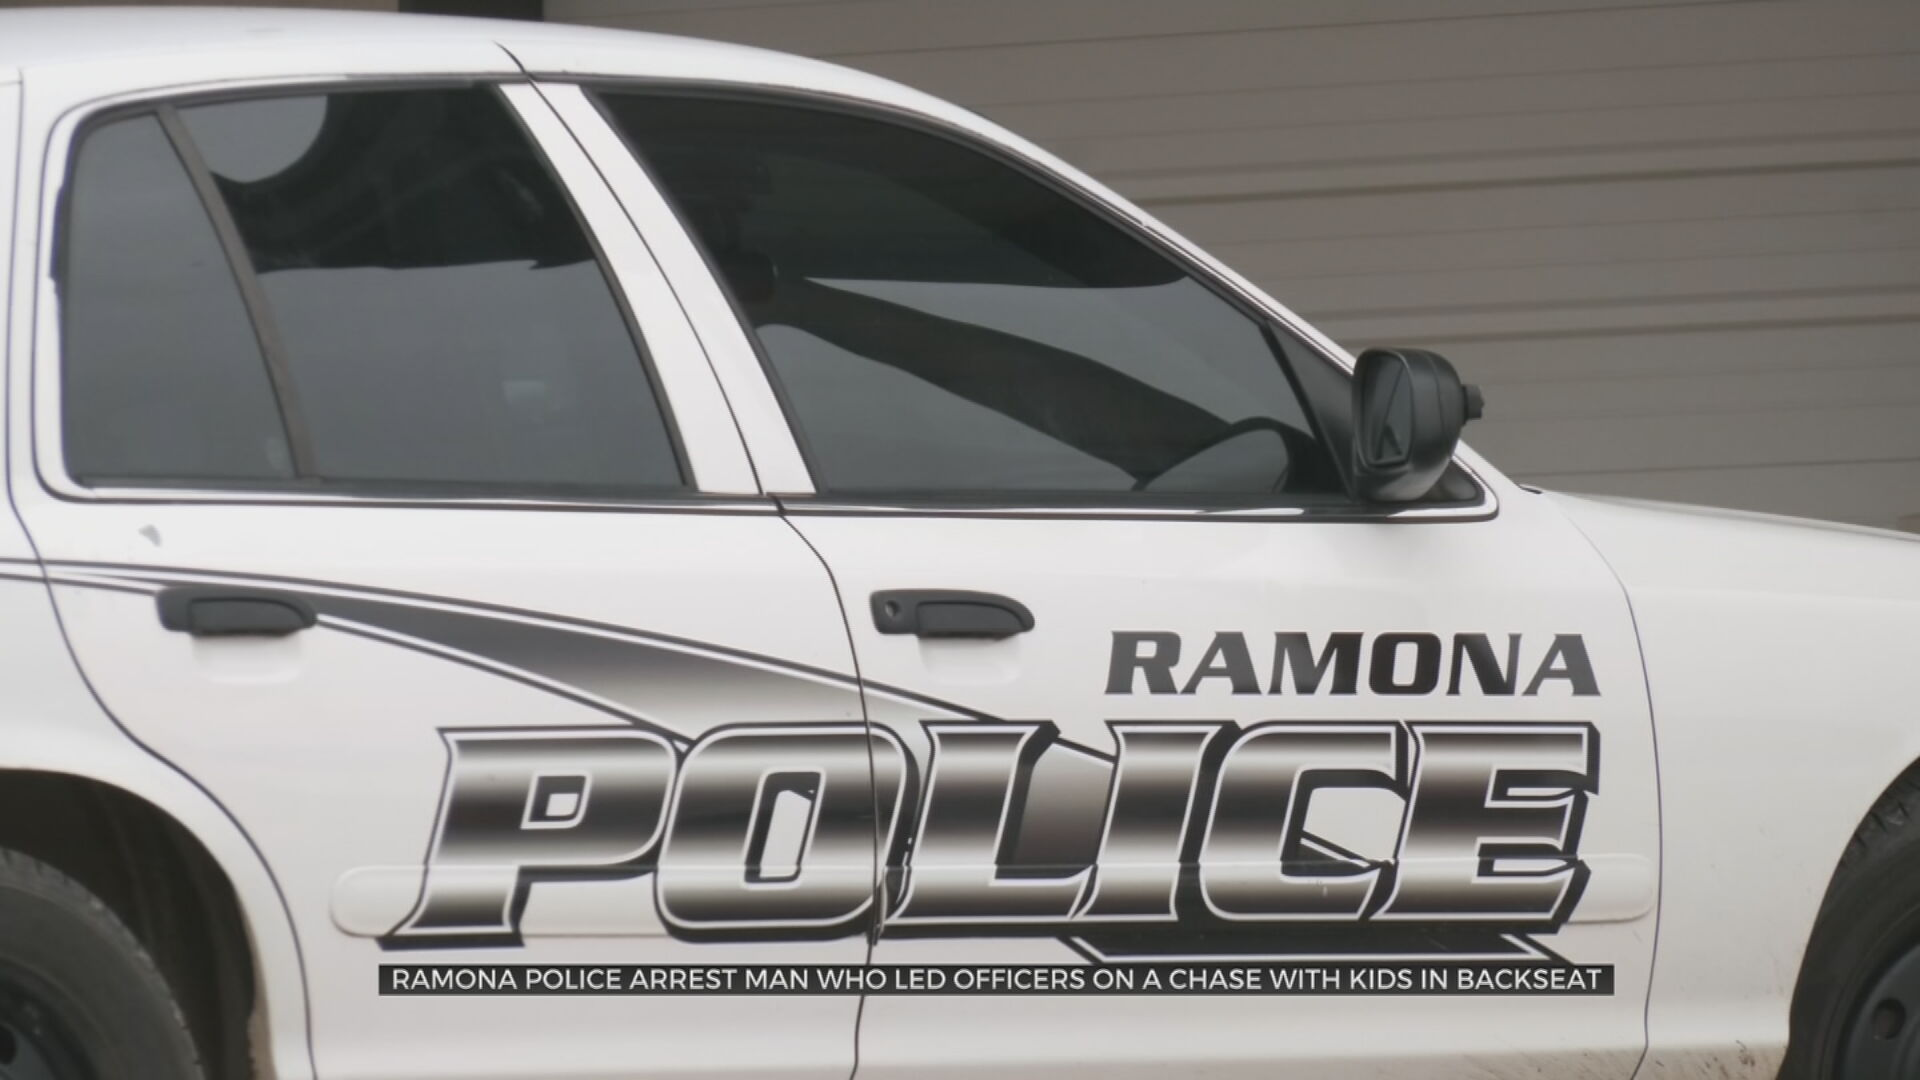 Ramona Police Arrest Man They Say Led Officers On Chase With Kids In Backseat